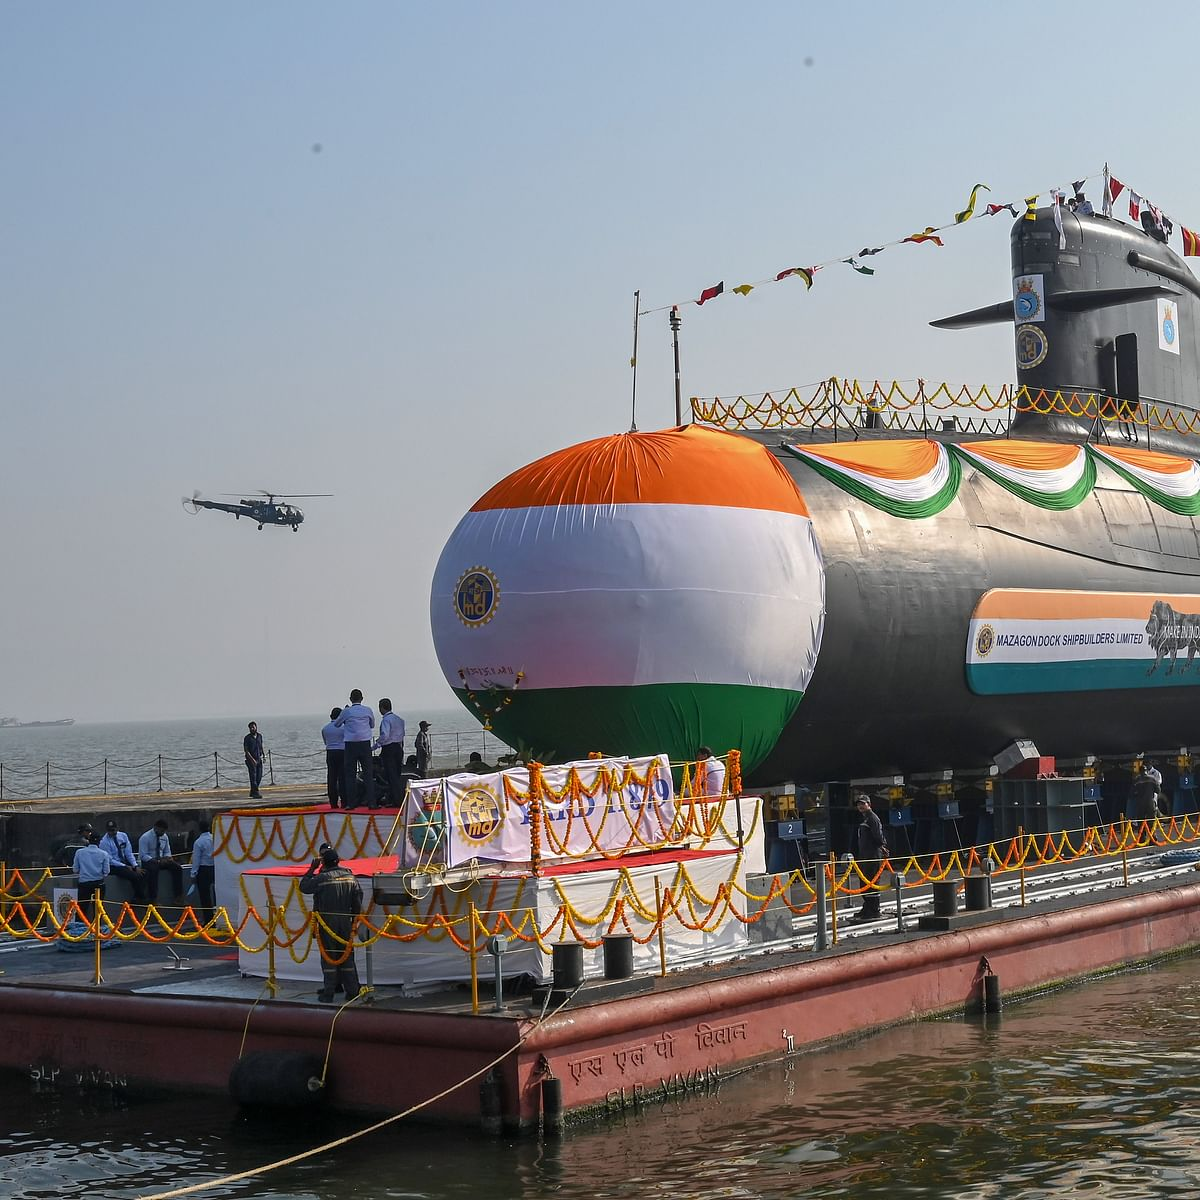 Indian Navy's fifth Scorpene class submarine Vagir launched: Here's all you need to know